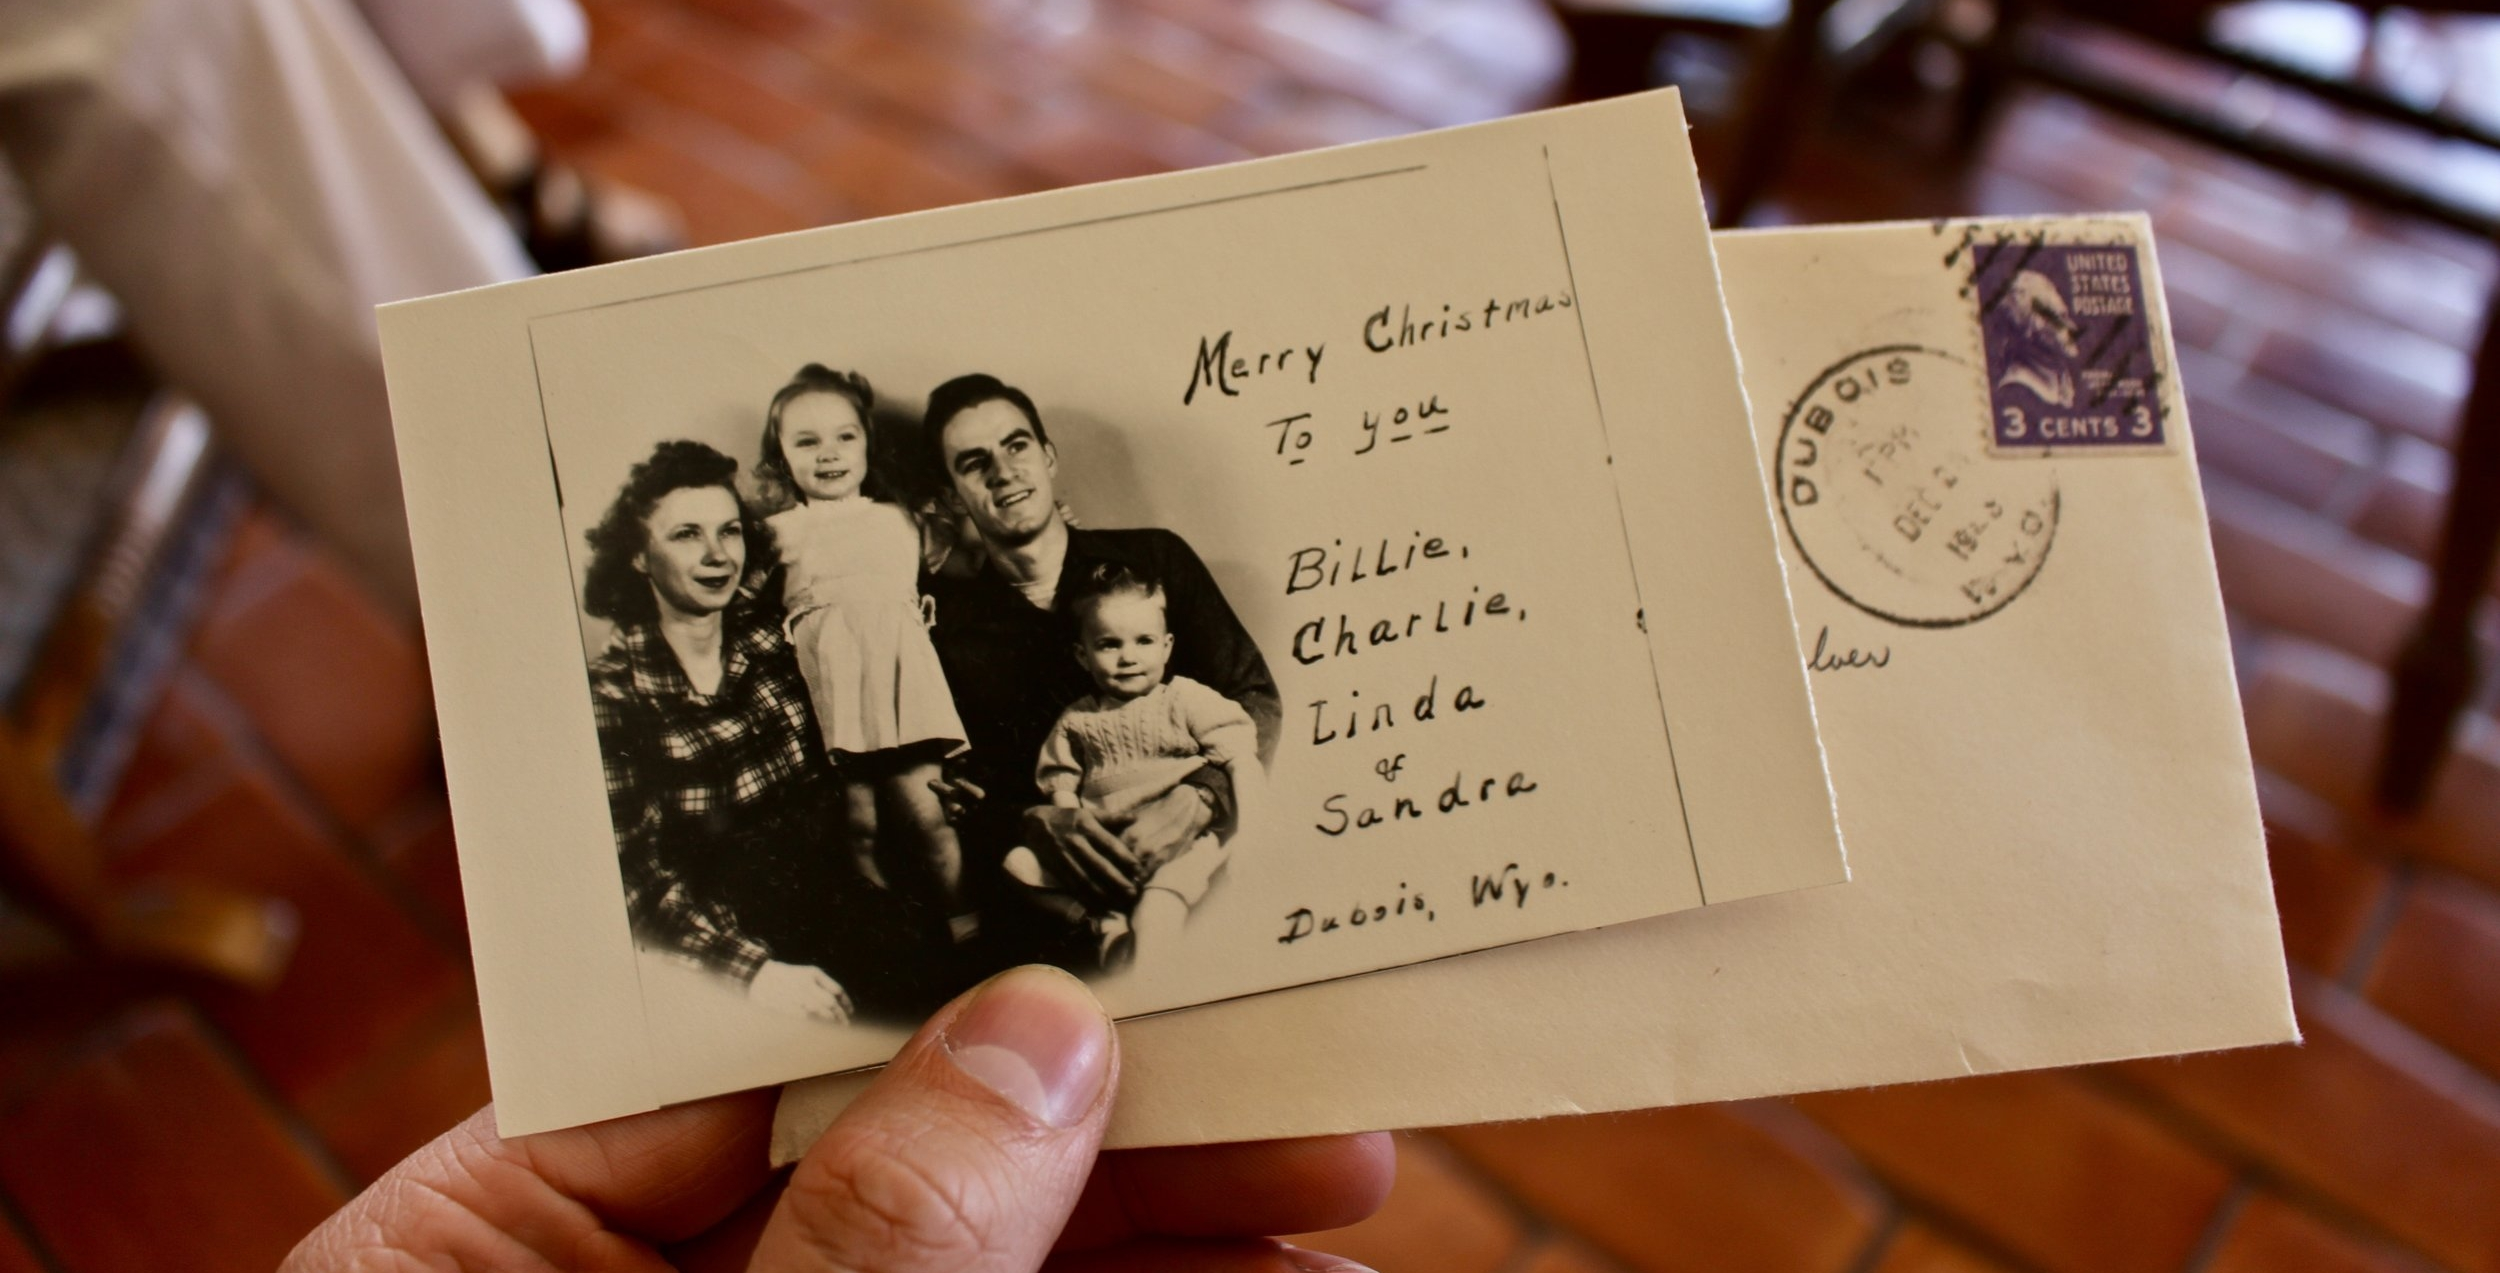 A Christmas card from an earlier time